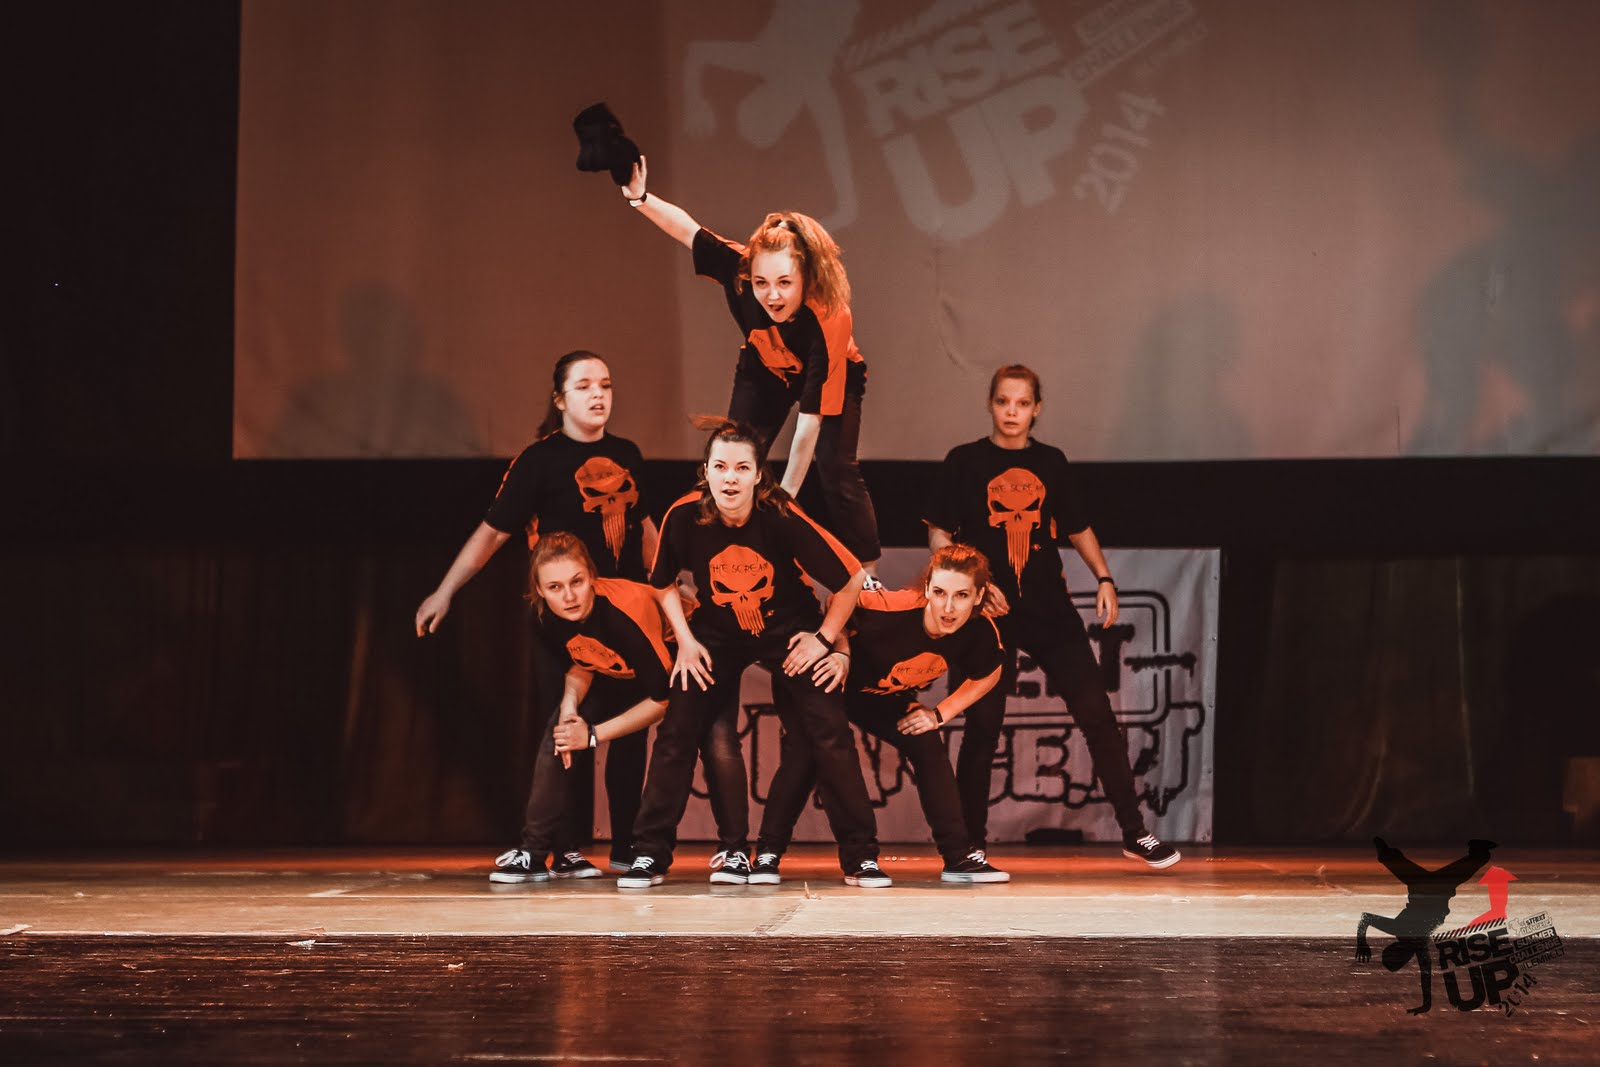 SKILLZ at RISEUP 2014 - _MG_7550.jpg